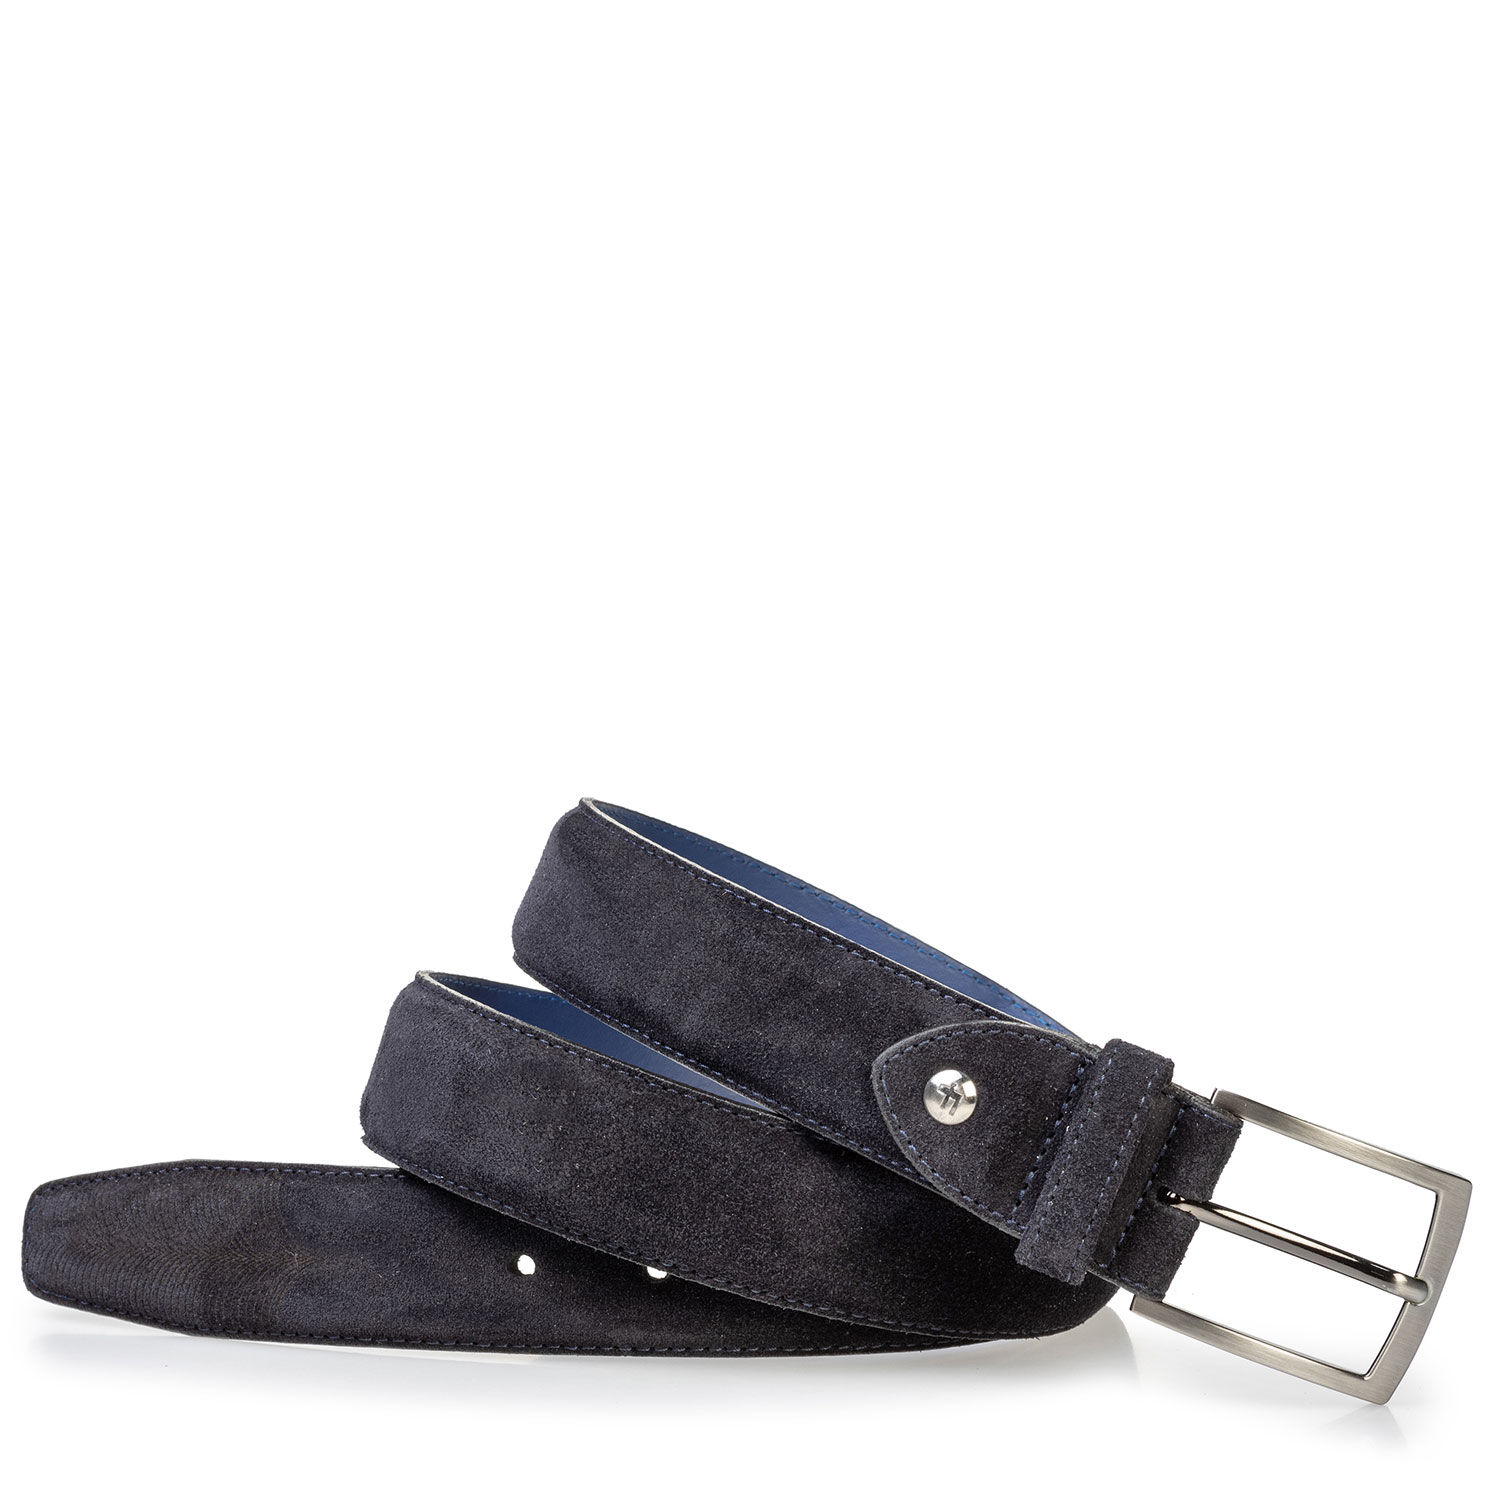 75217/03 - Suede leather belt with laser-cut print blue